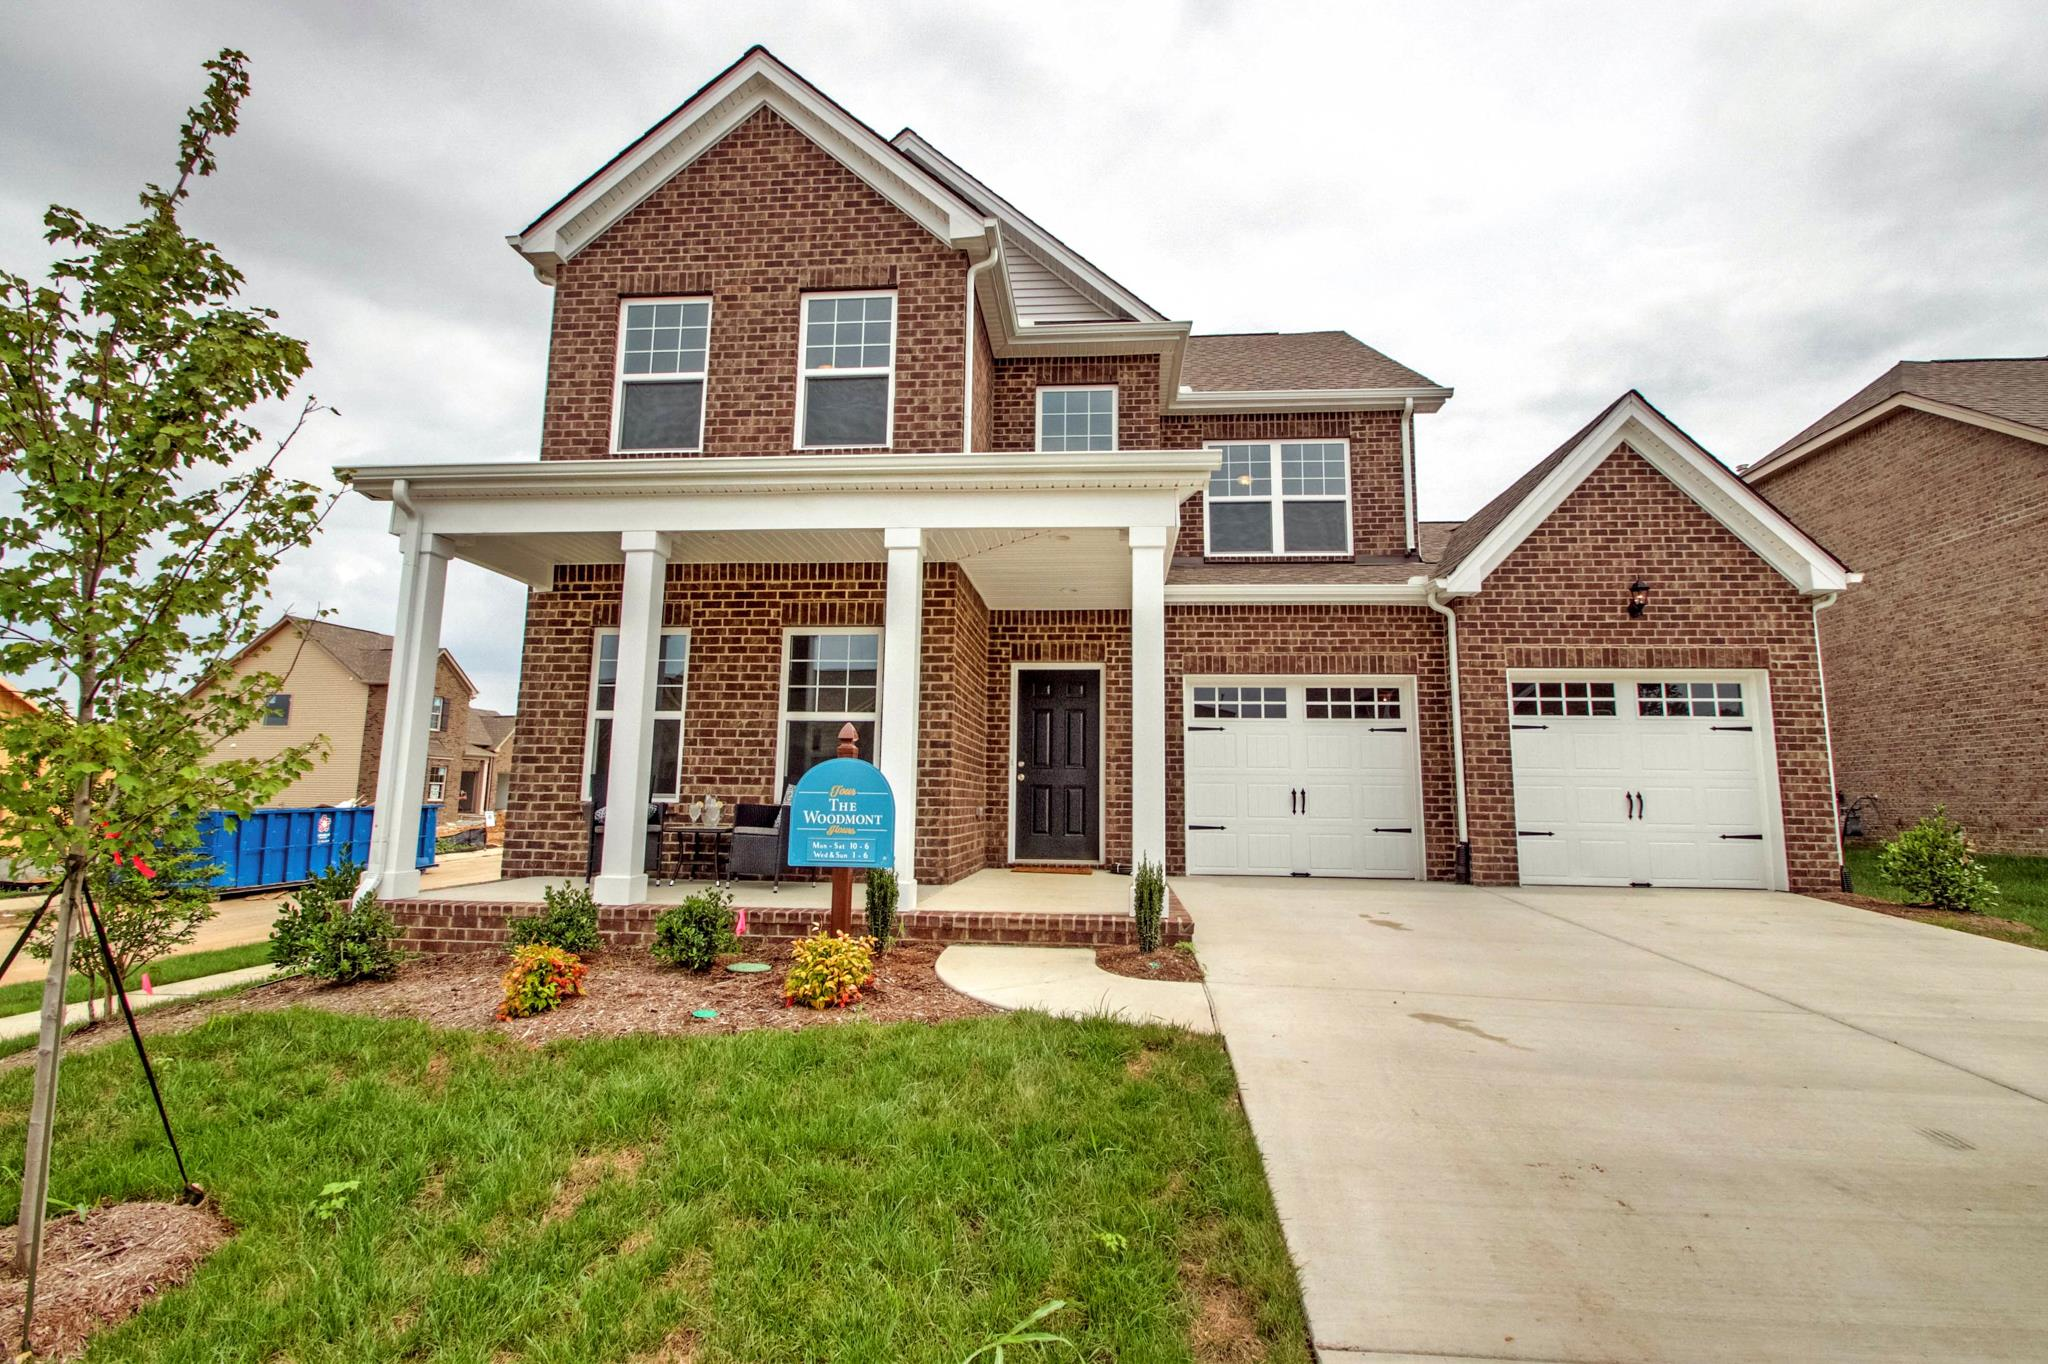 1310 Coates Lane, Gallatin in Sumner County County, TN 37066 Home for Sale